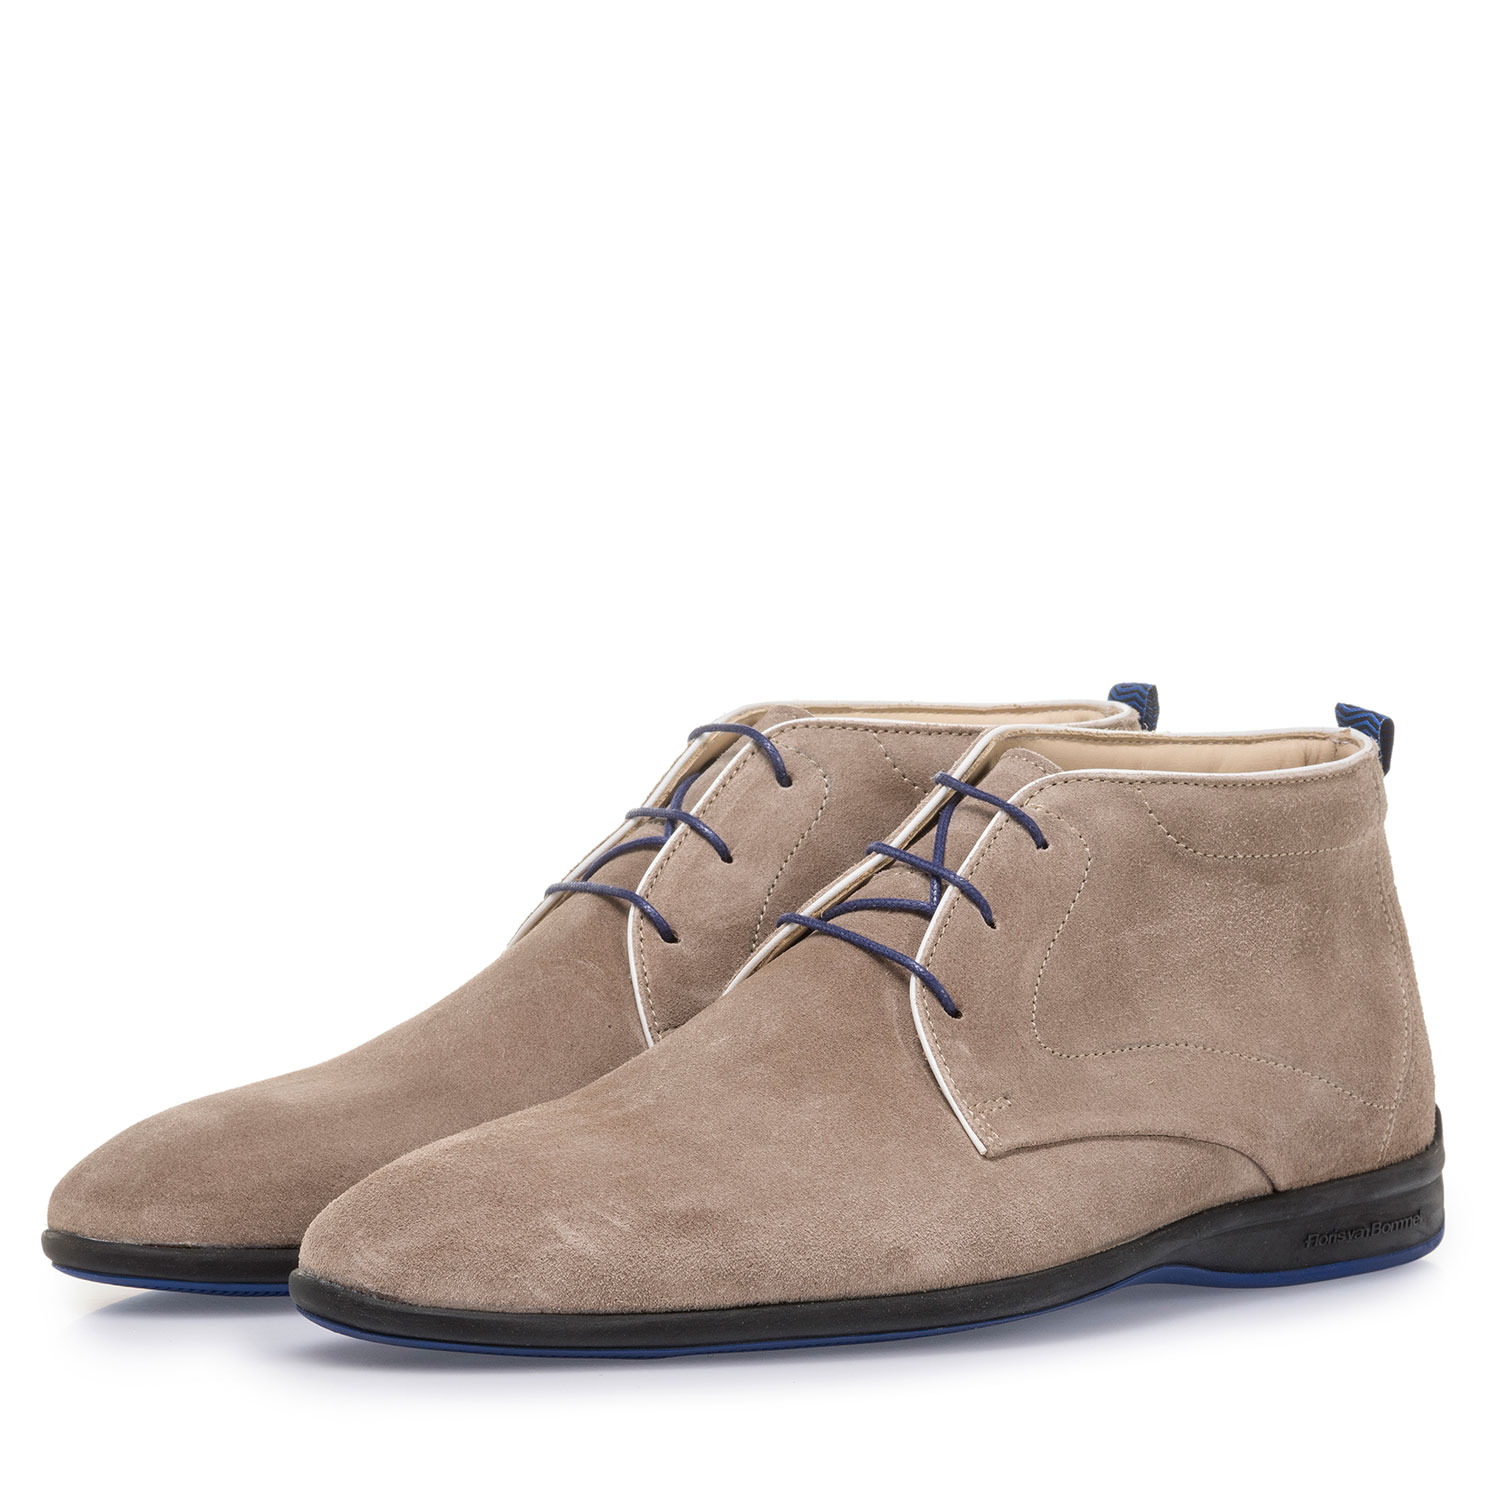 20300/01 - Beige suede leather lace boot